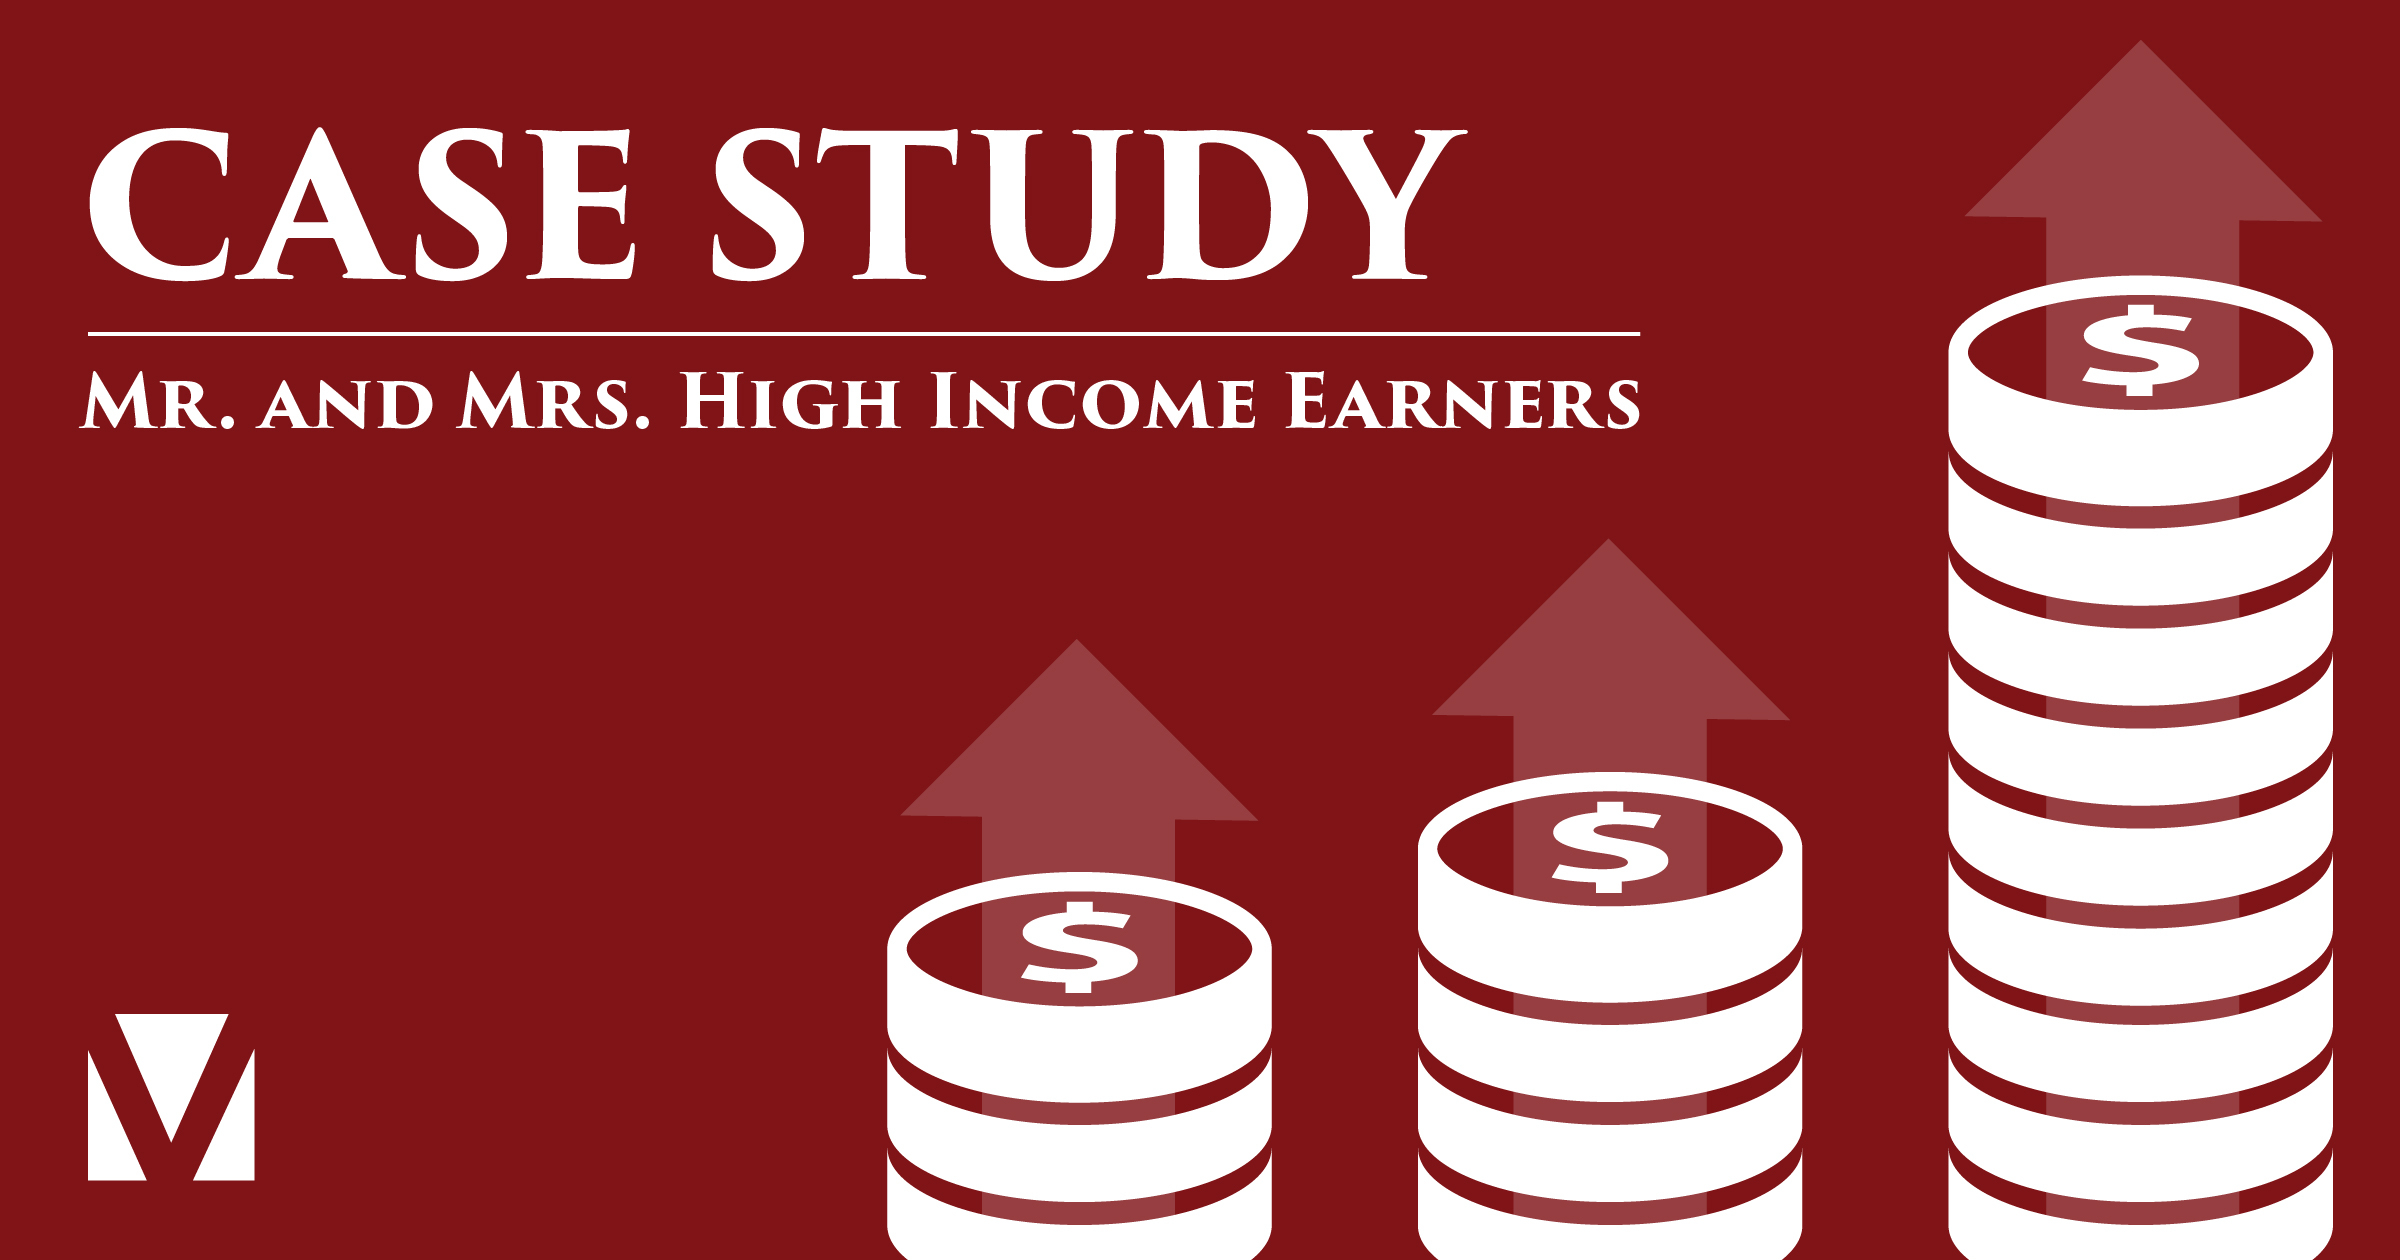 Case Study: Mr. and Mrs. High Income Earners